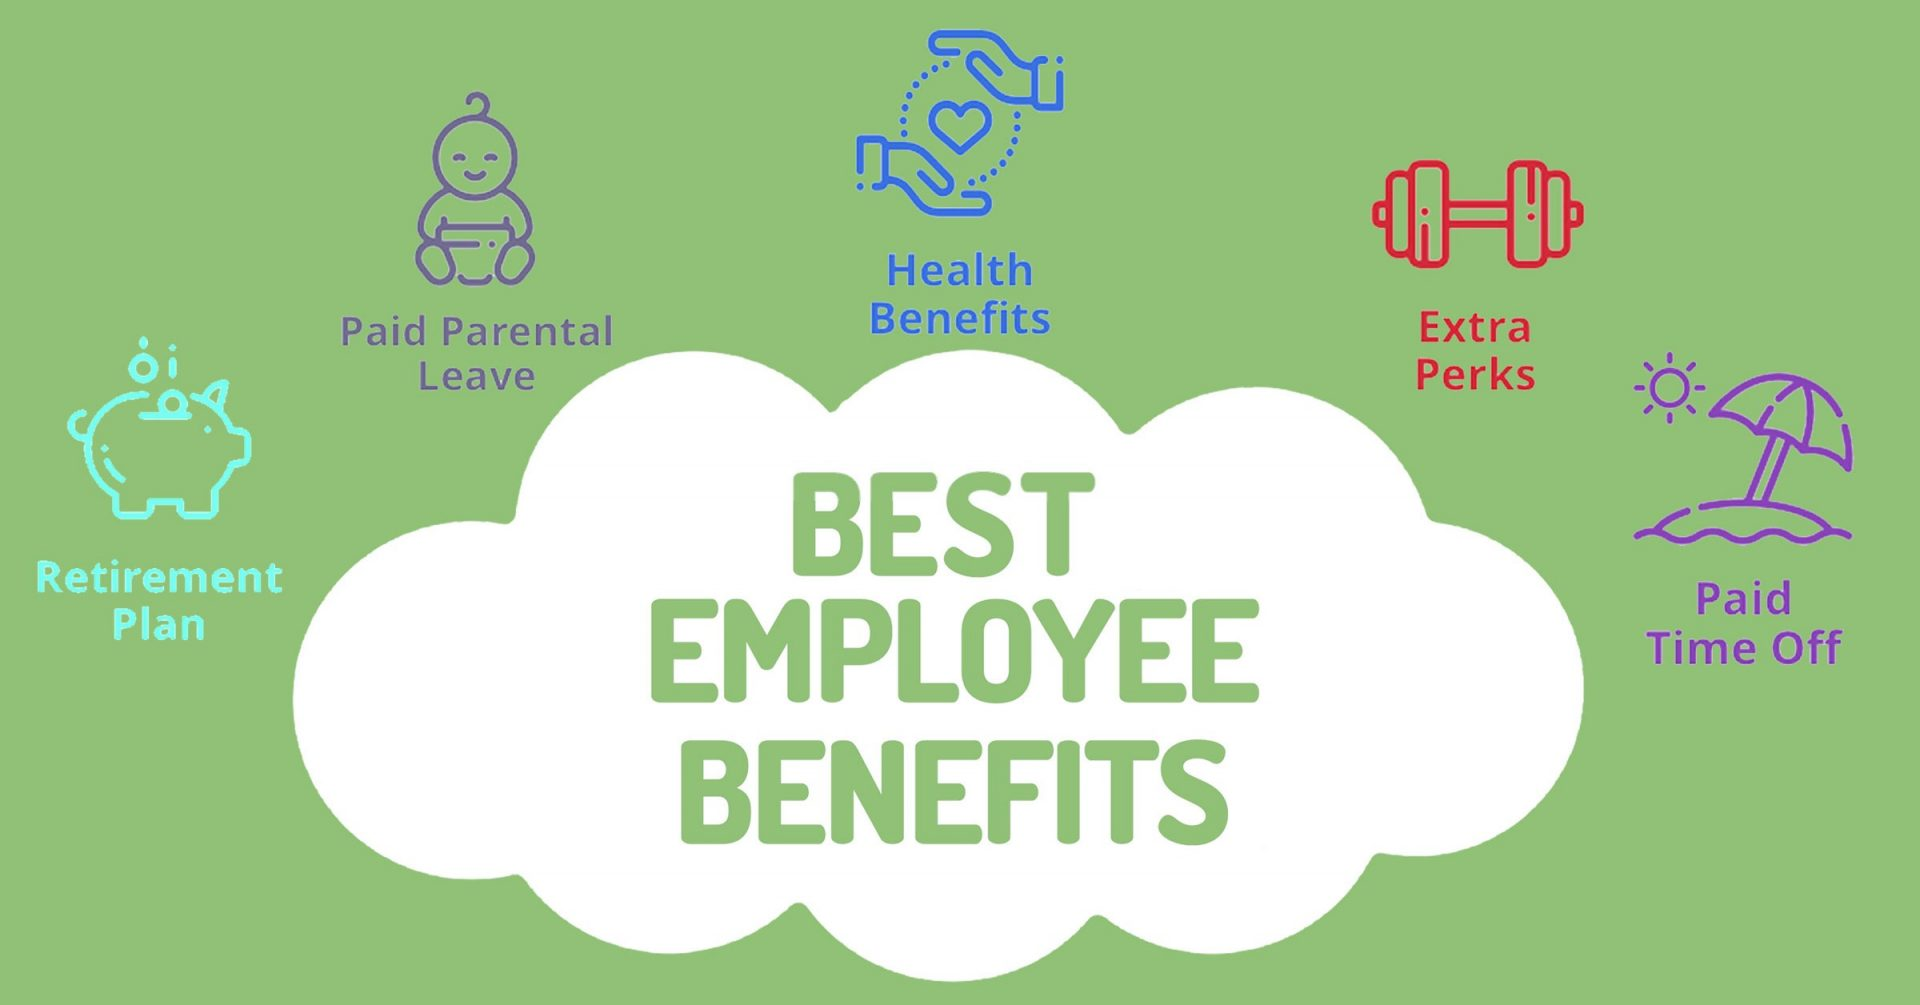 Best Employee Benefits